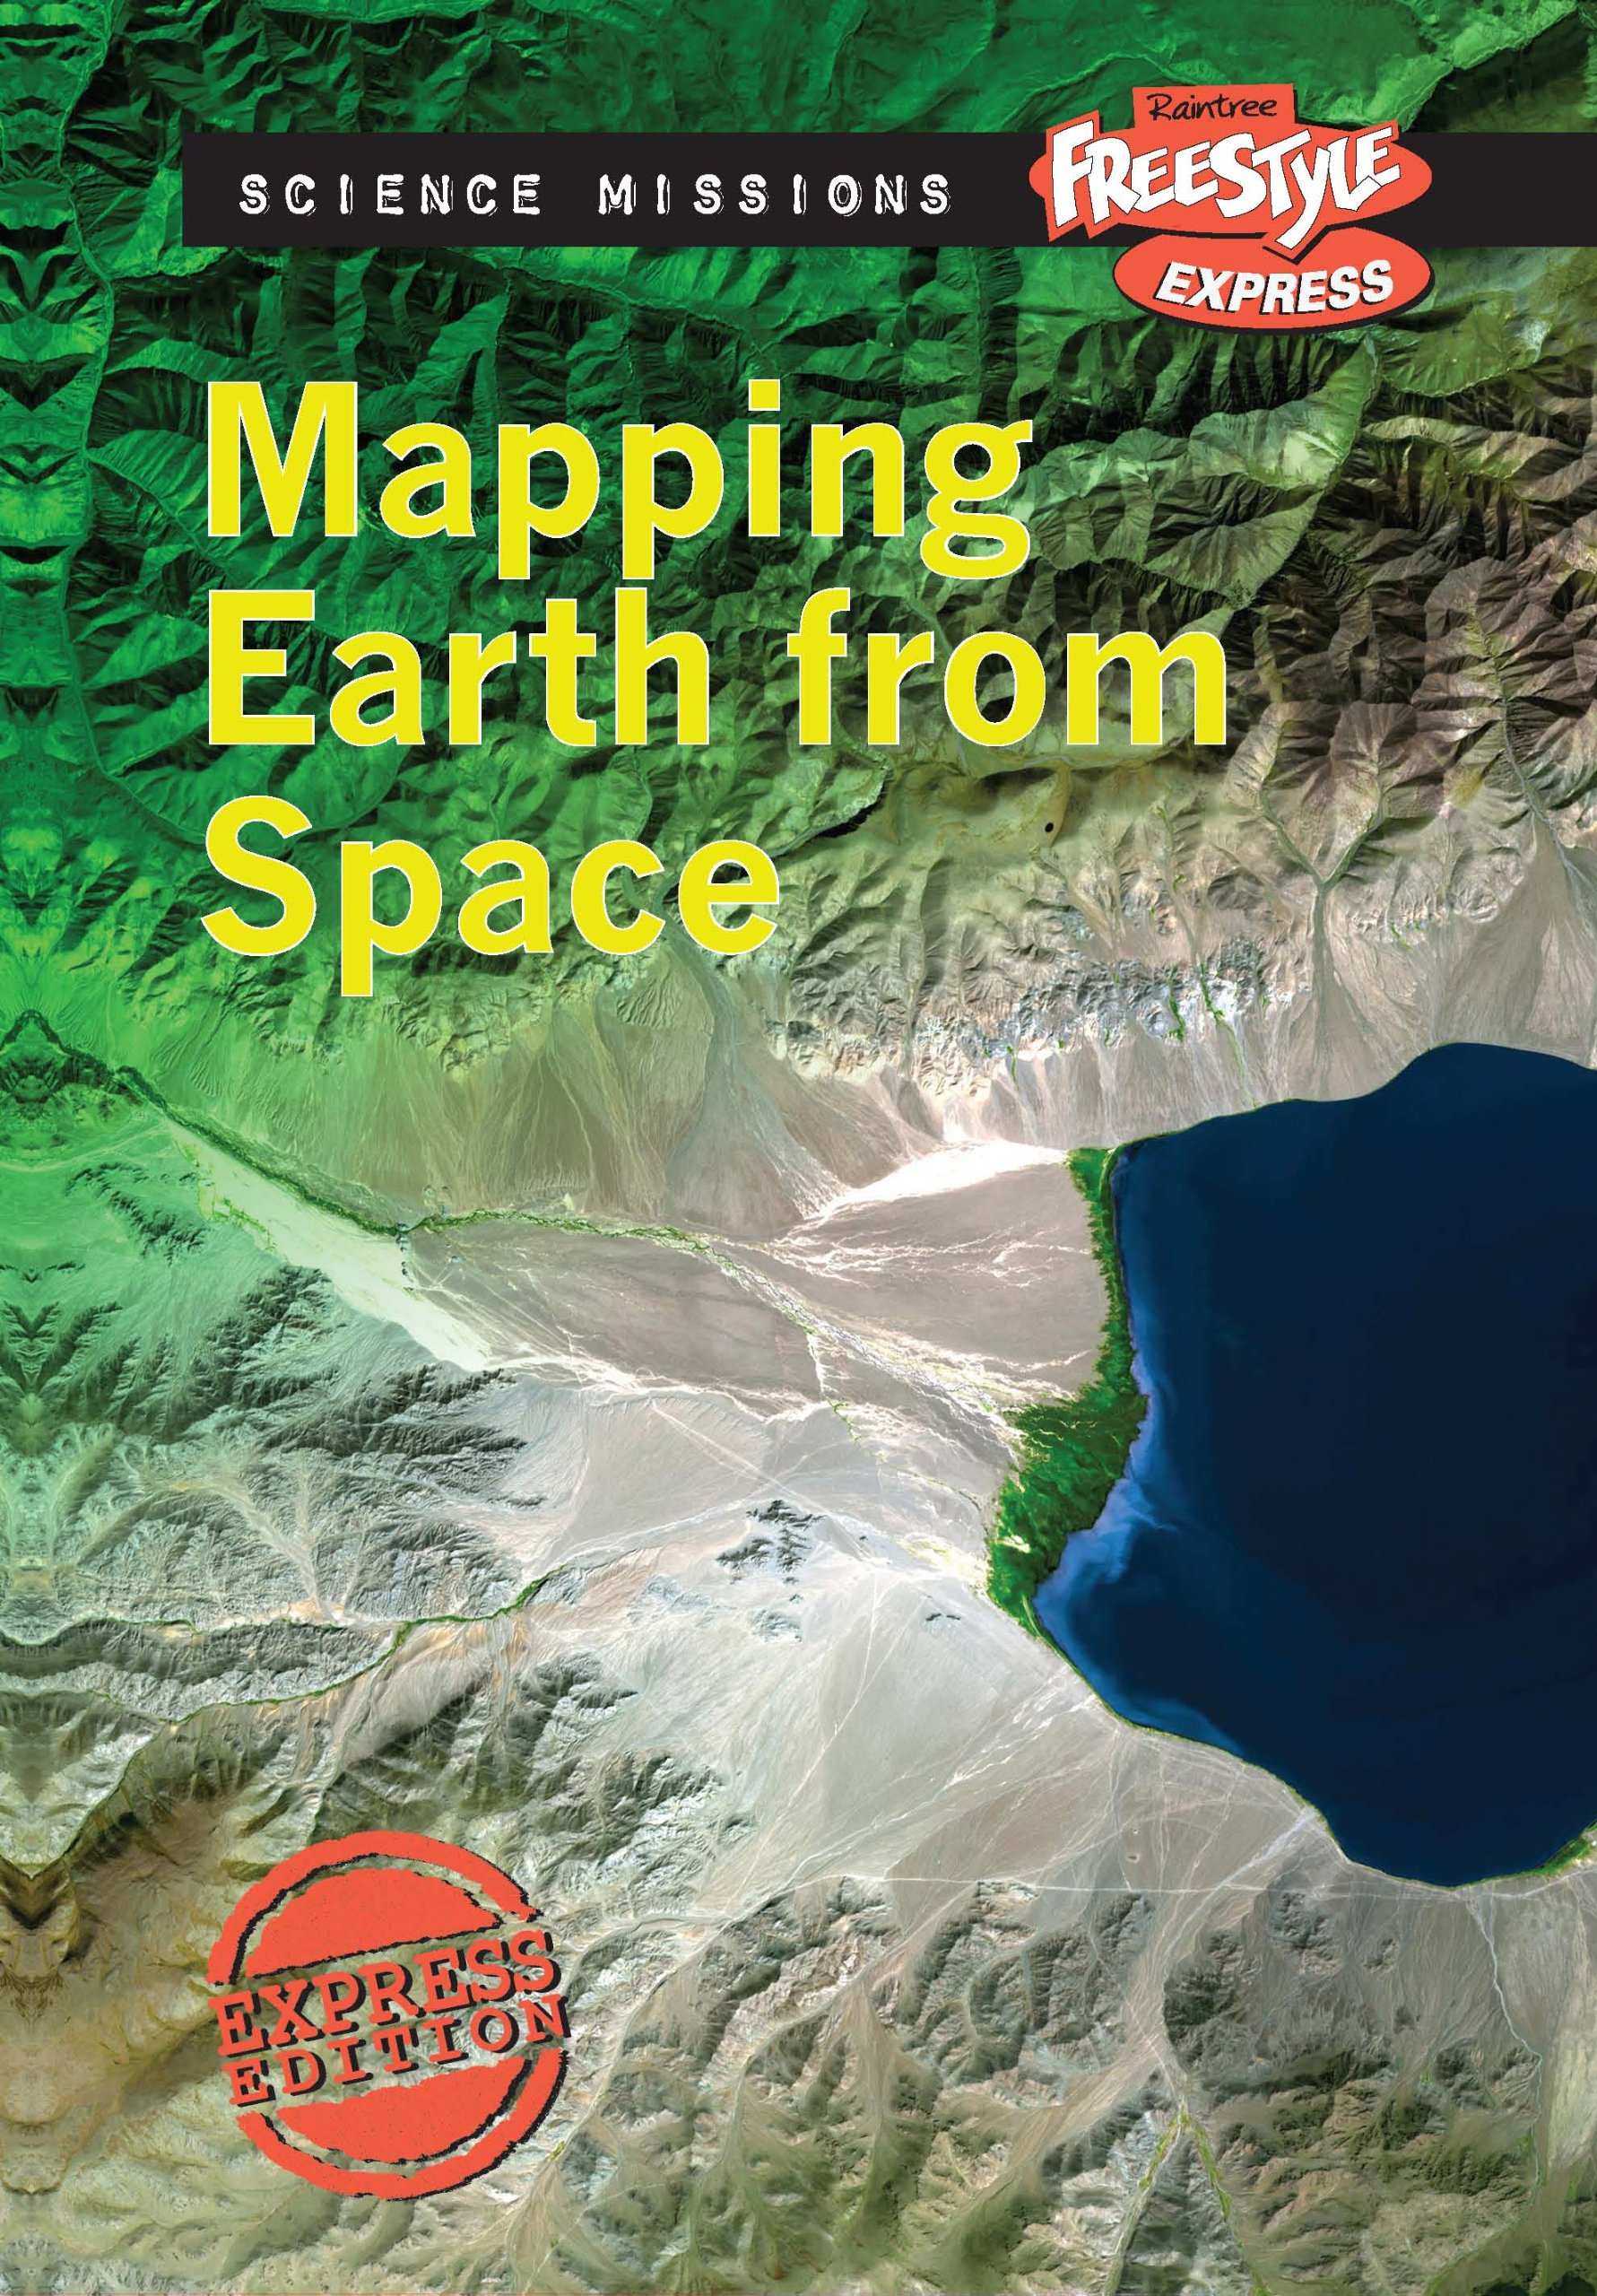 Science Missions: Mapping Earth from Space